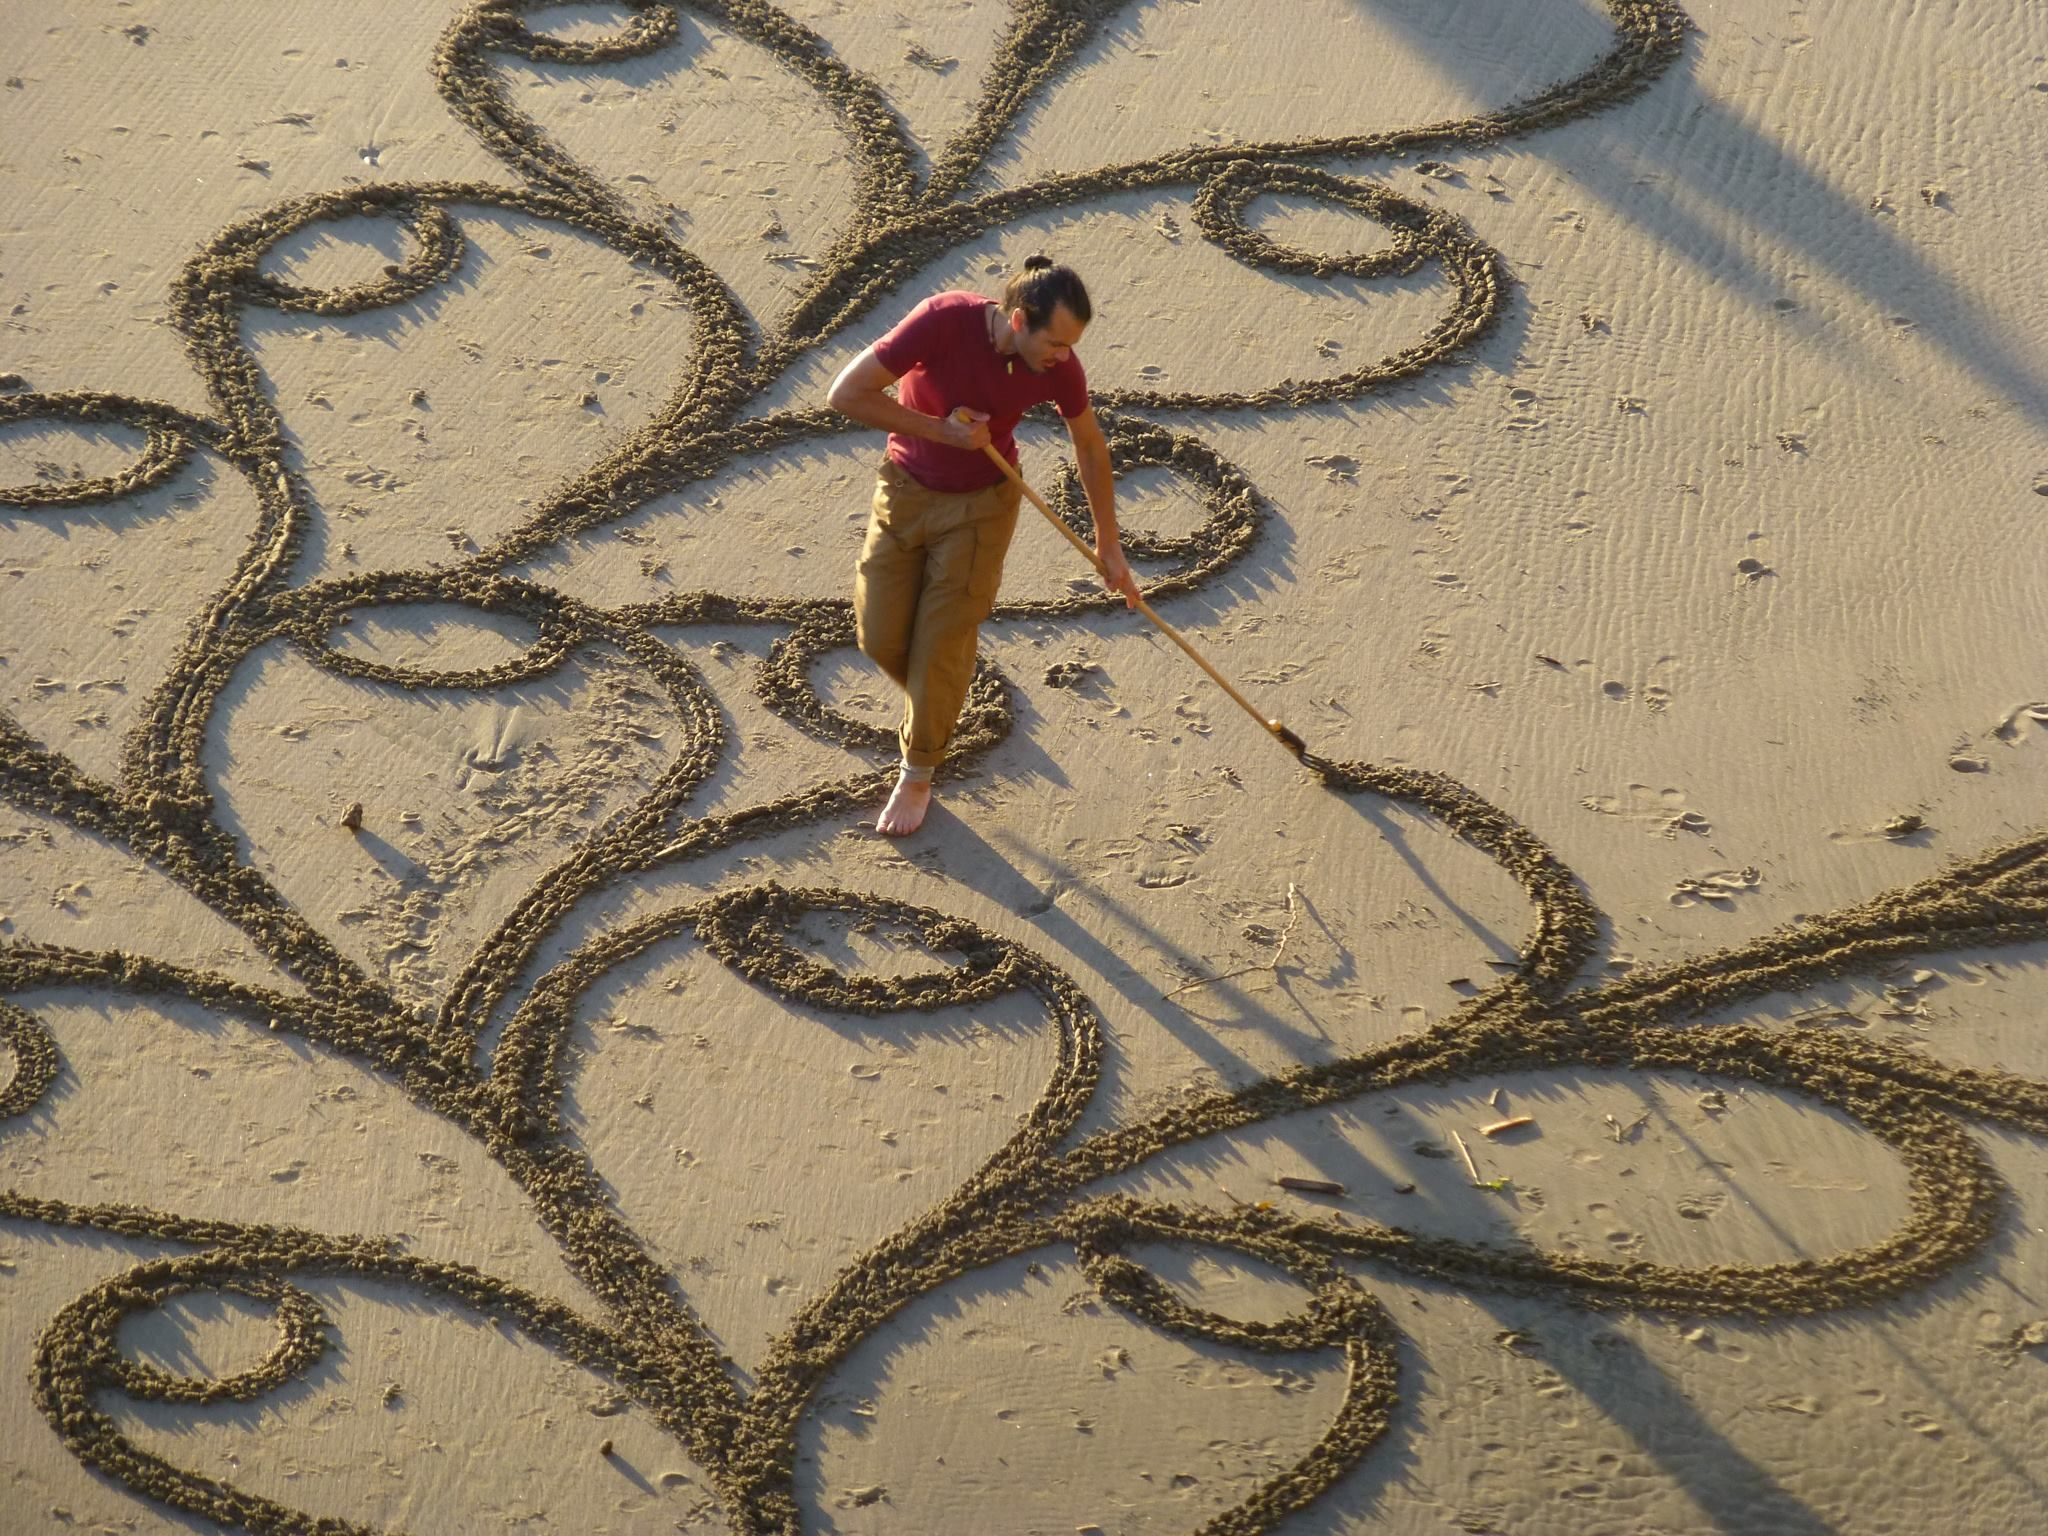 Sand Painting by Andres Amador